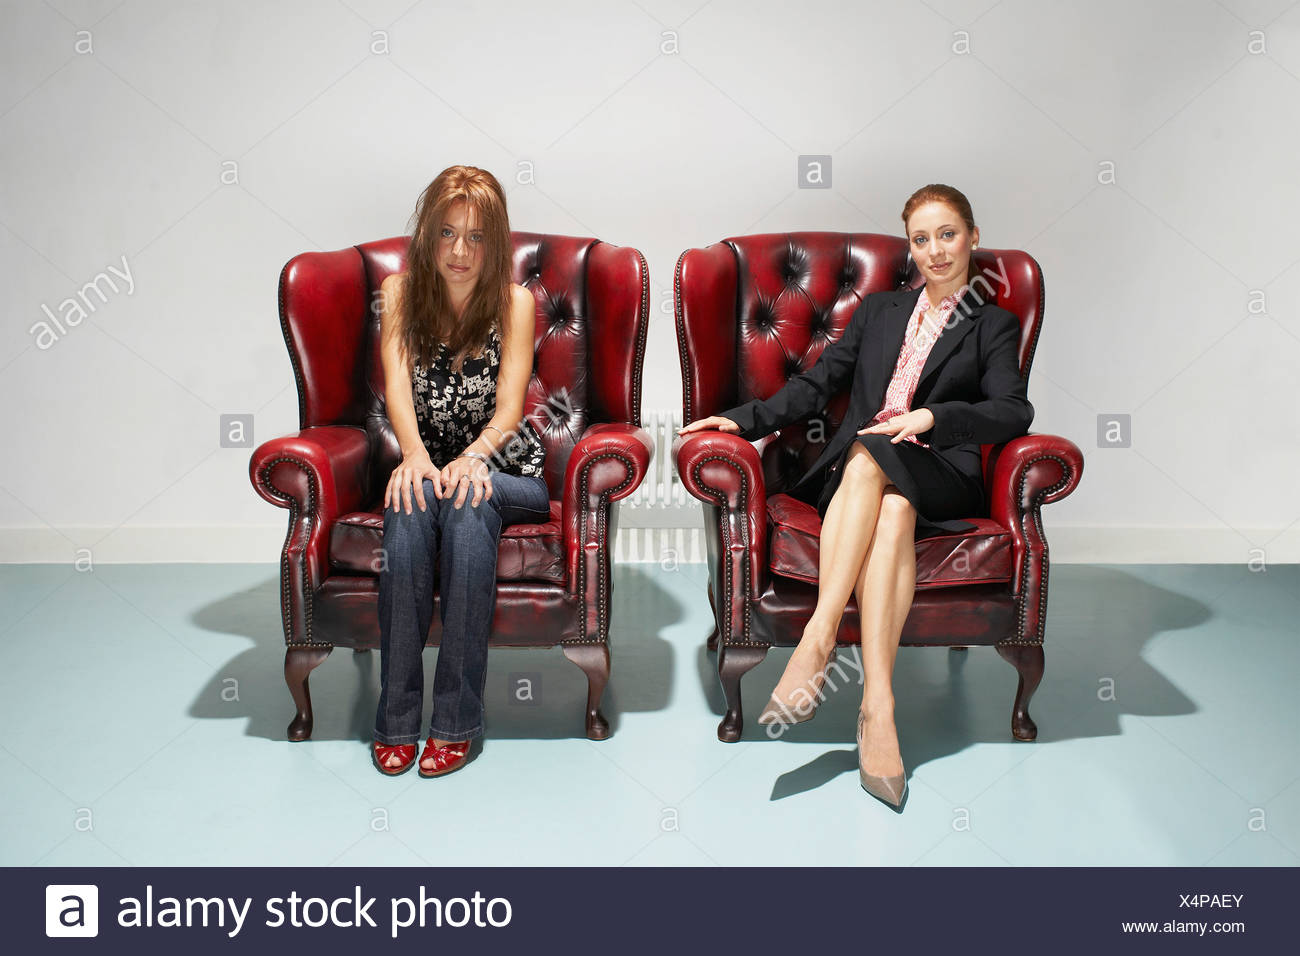 Businesswoman and disheveled woman in comfy leather chairs - Stock Image